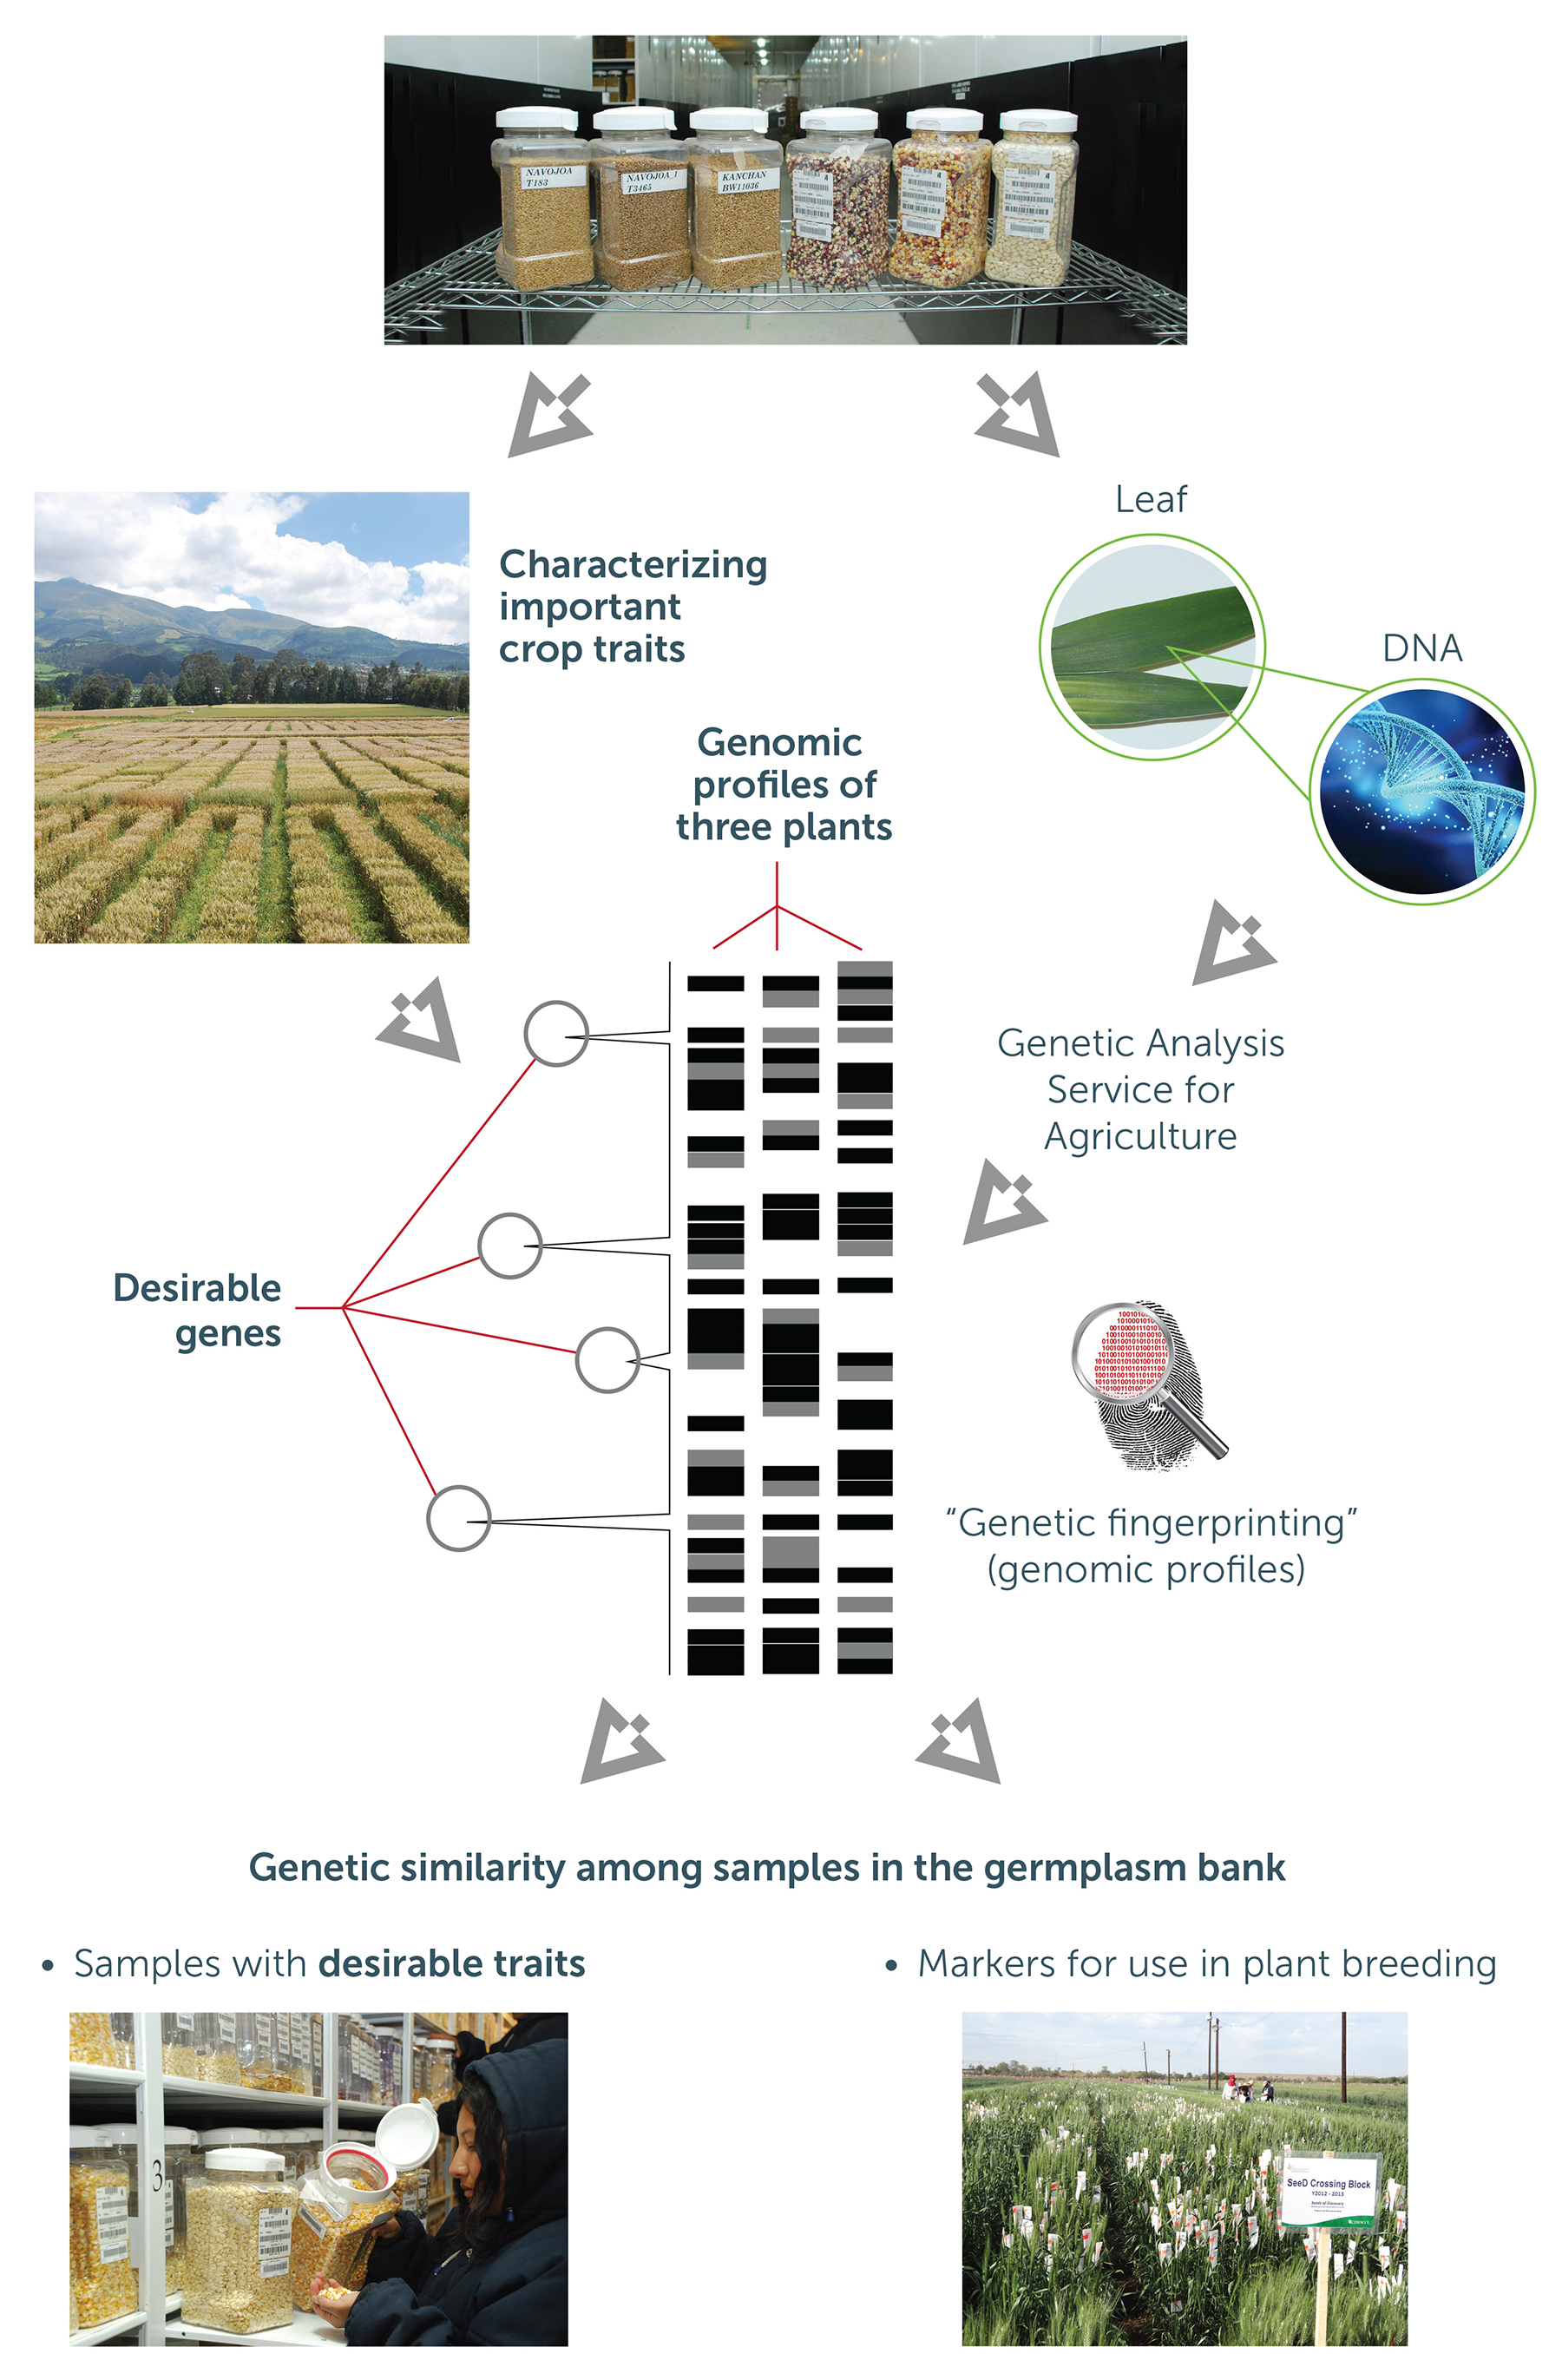 Harnessing genetic resources for the nutrition and well-being of current and future generations.